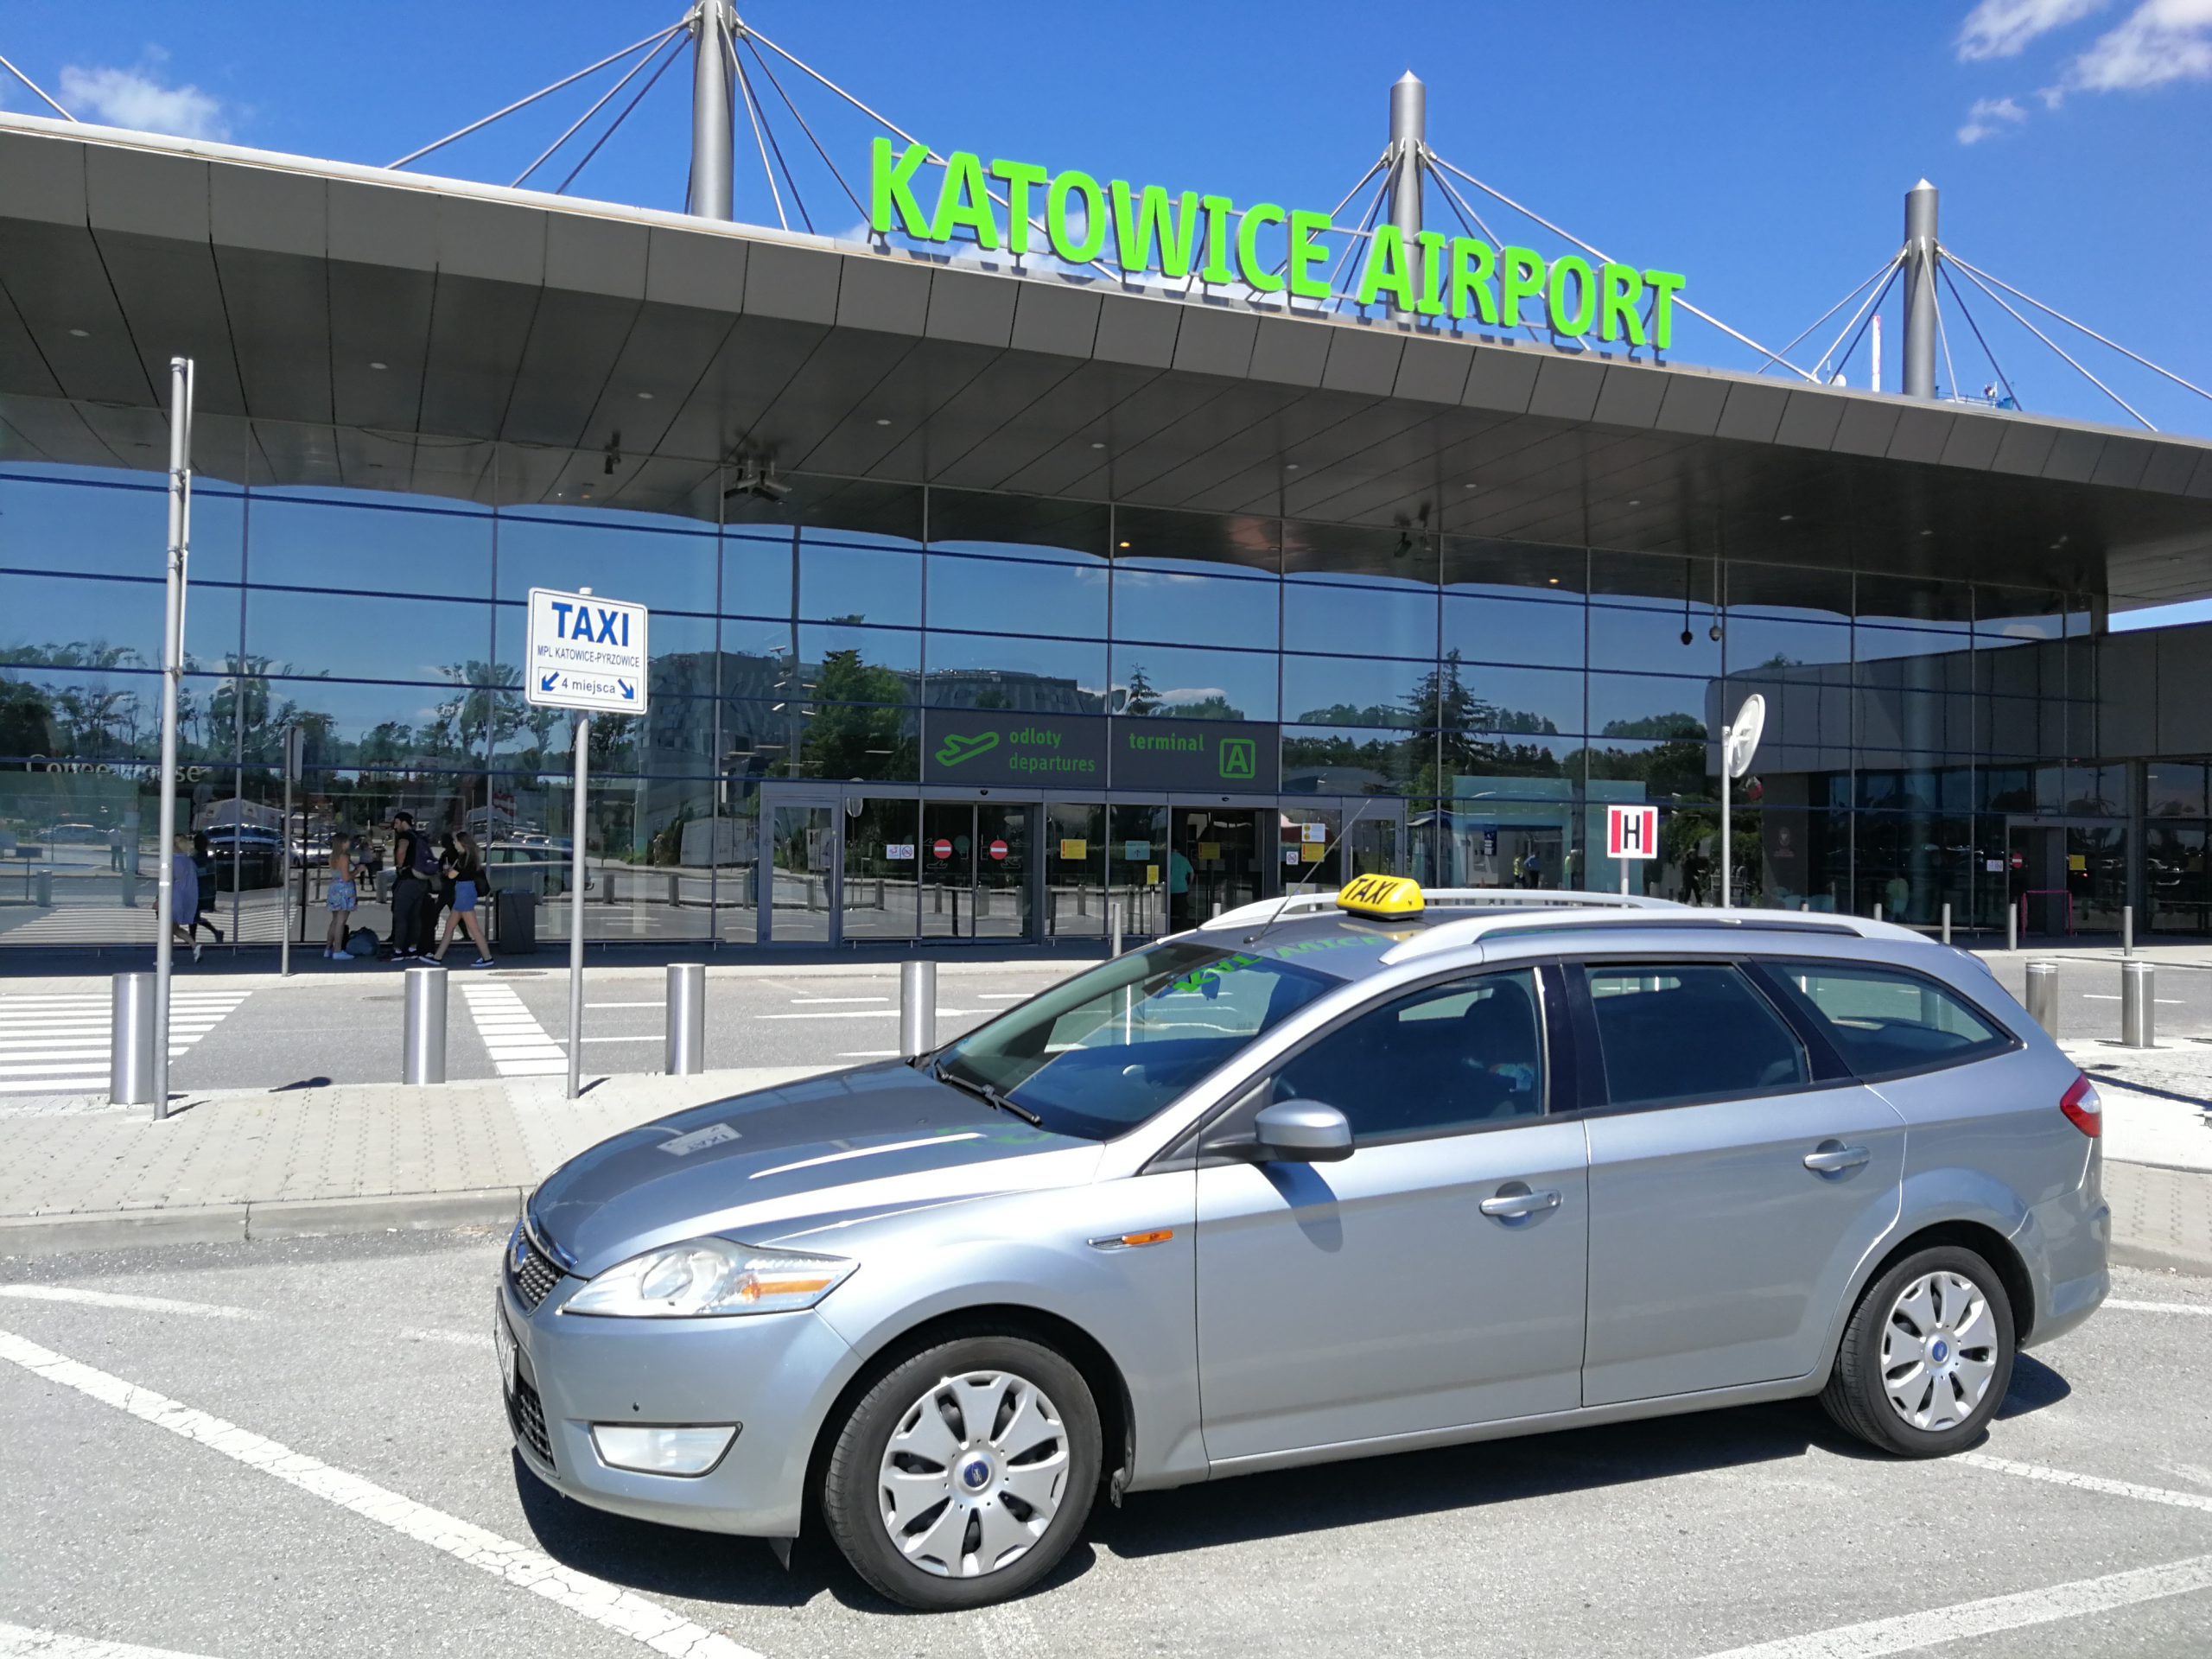 Taxi Airport Katowice - GB, US 2